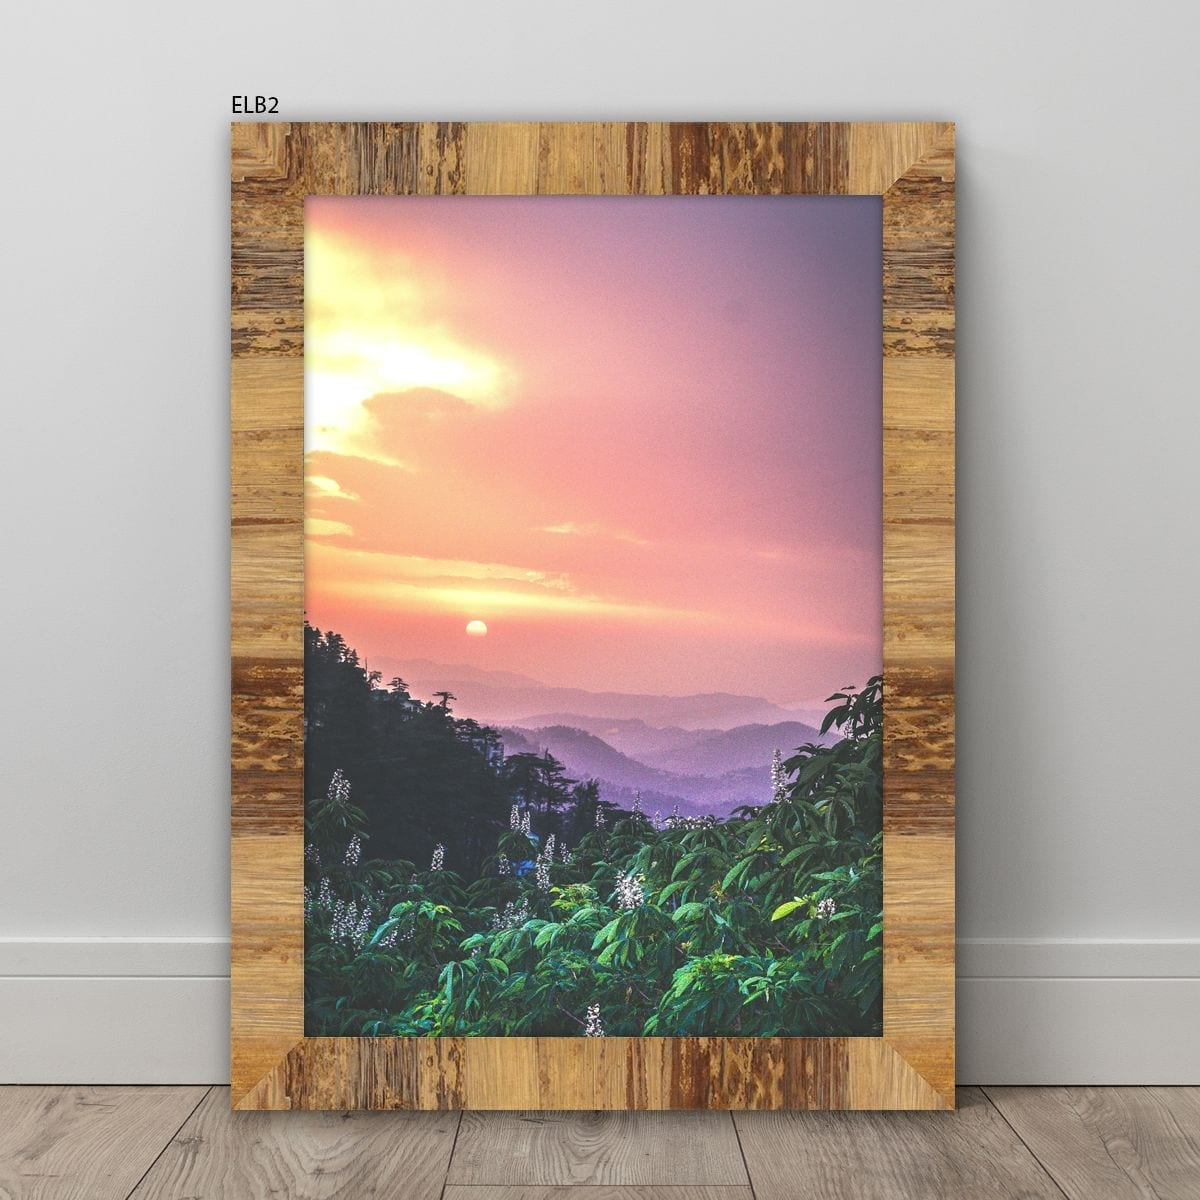 Sunset Photo Framed with a Natural Patterned Frame